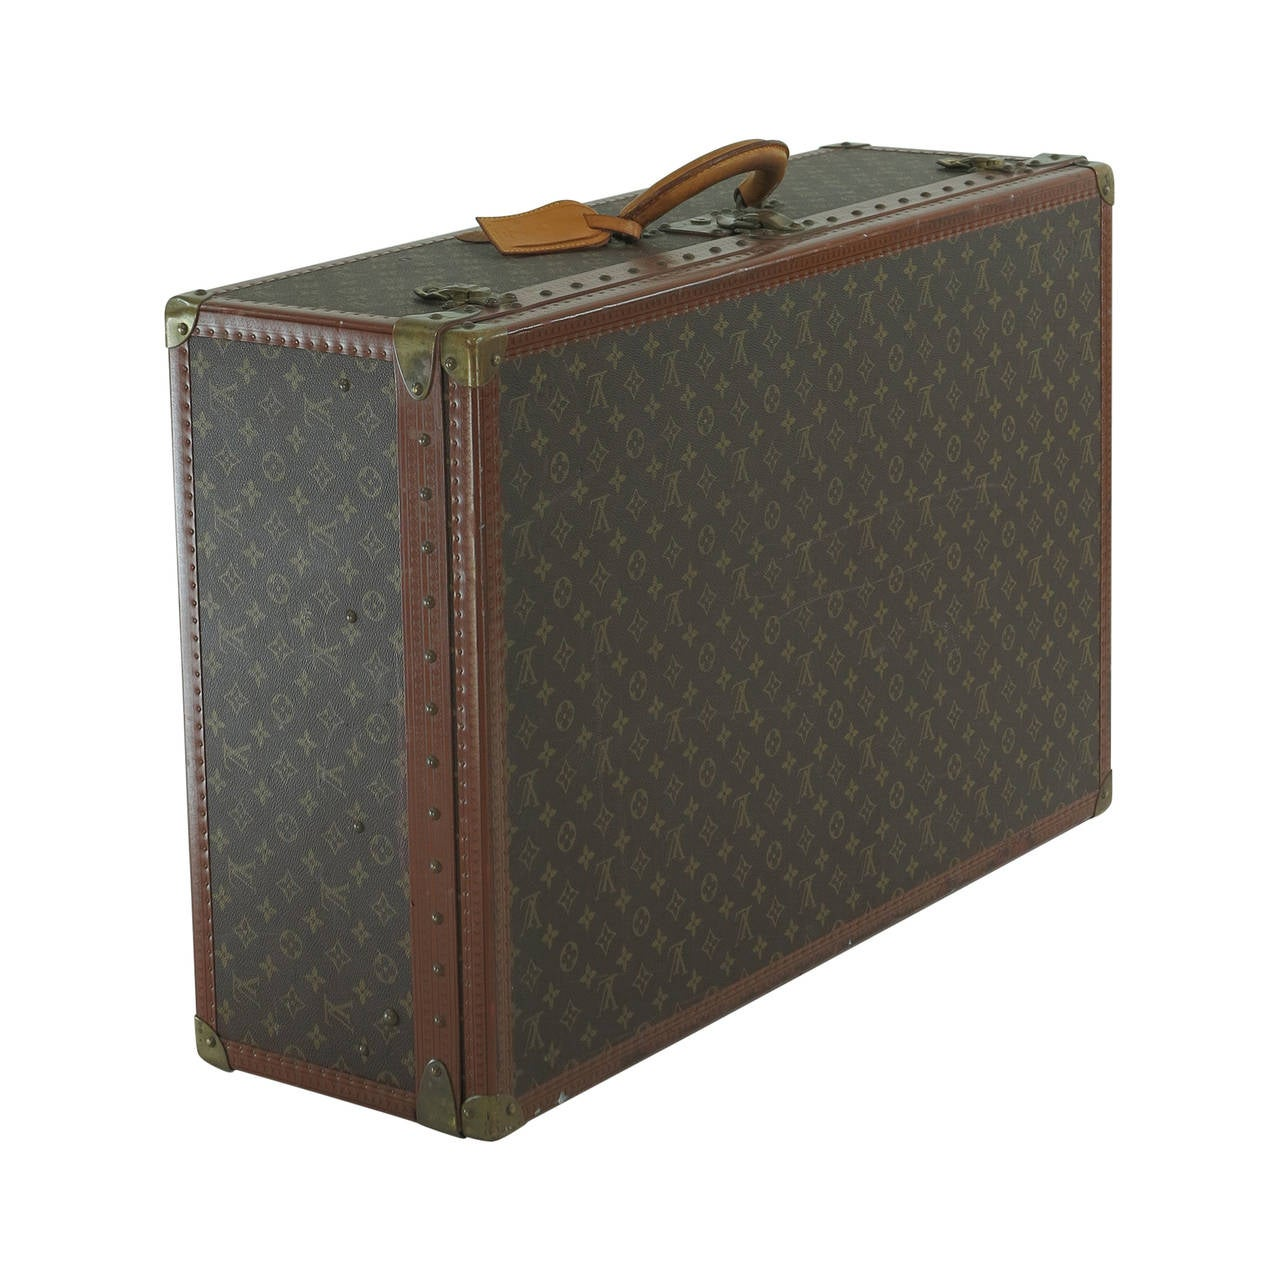 Louis Vuitton Alzar 80 Monogram Hardside Suitcase Trunk